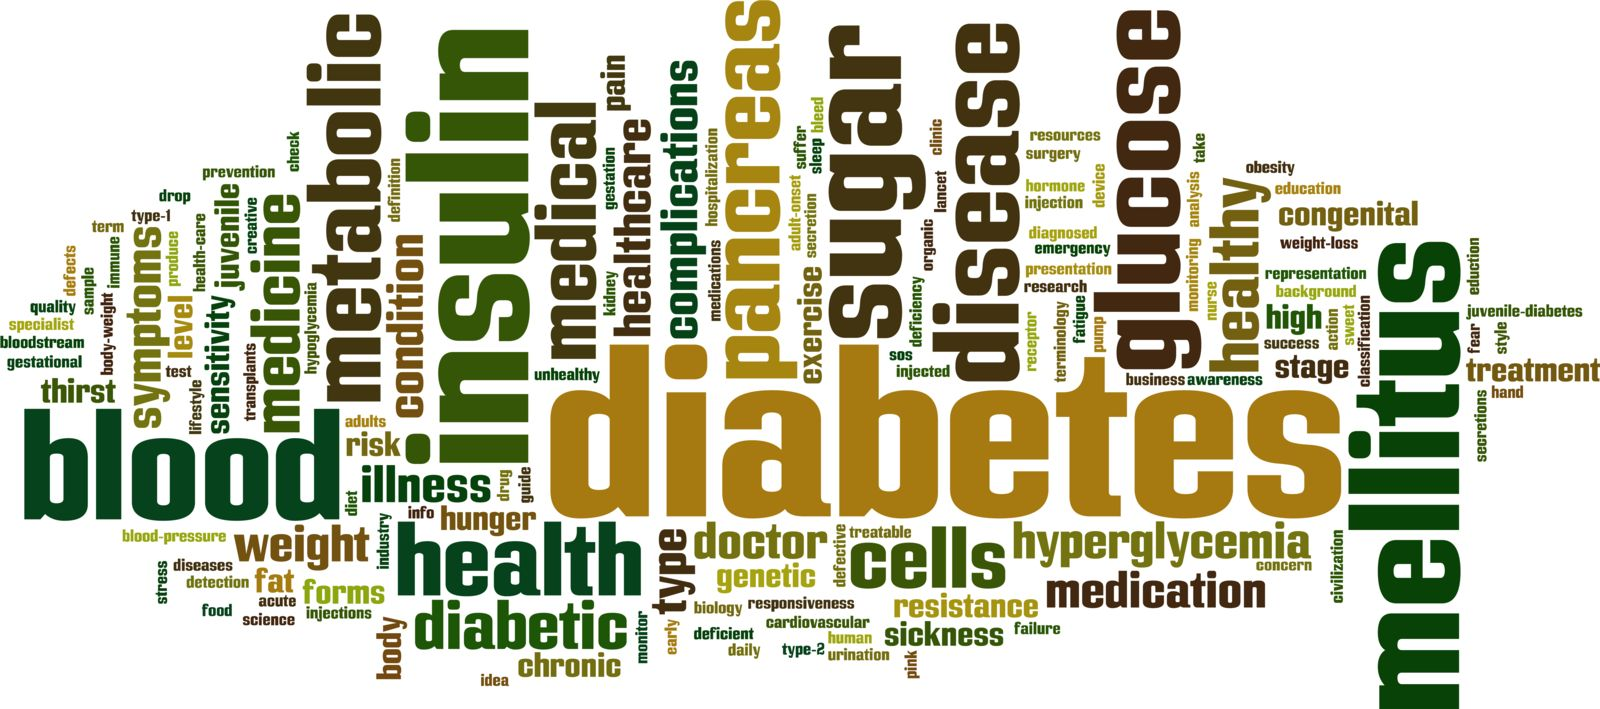 Graphic of words associated with diabetes.